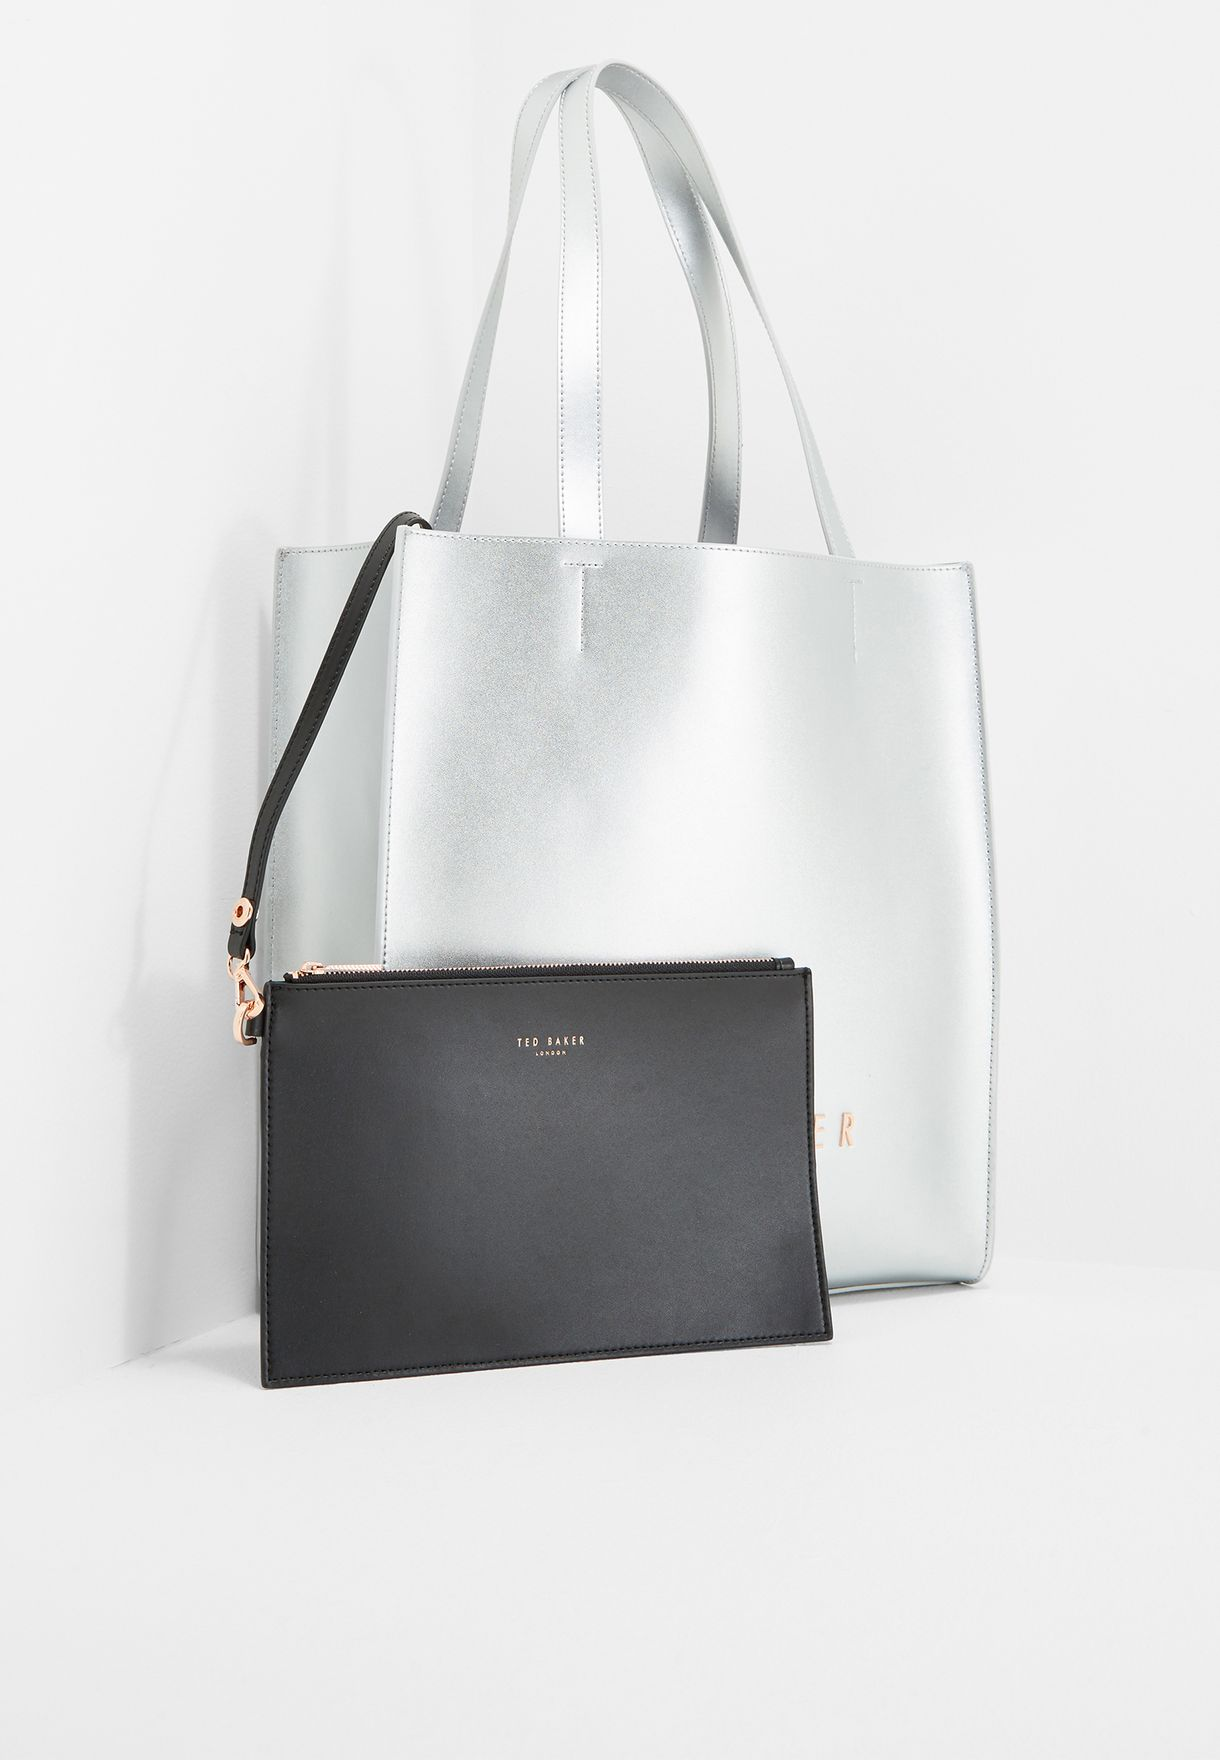 e1aa8be2a Shop Ted baker silver Statement Letters Shopper XB88 ELISSA for Women in  UAE - TE456AC67RYY